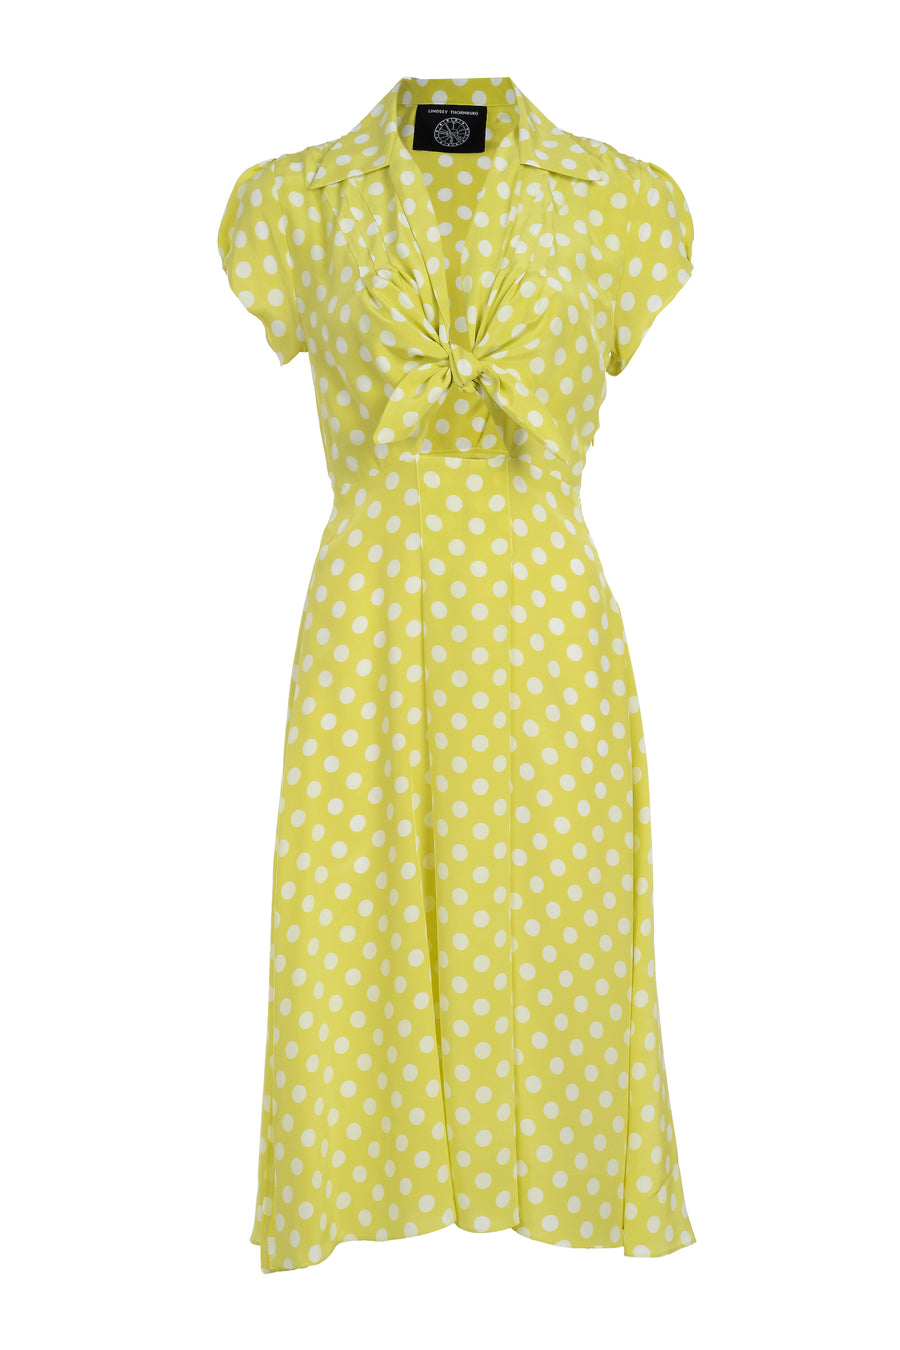 POLKA DOT CLARK DRESS